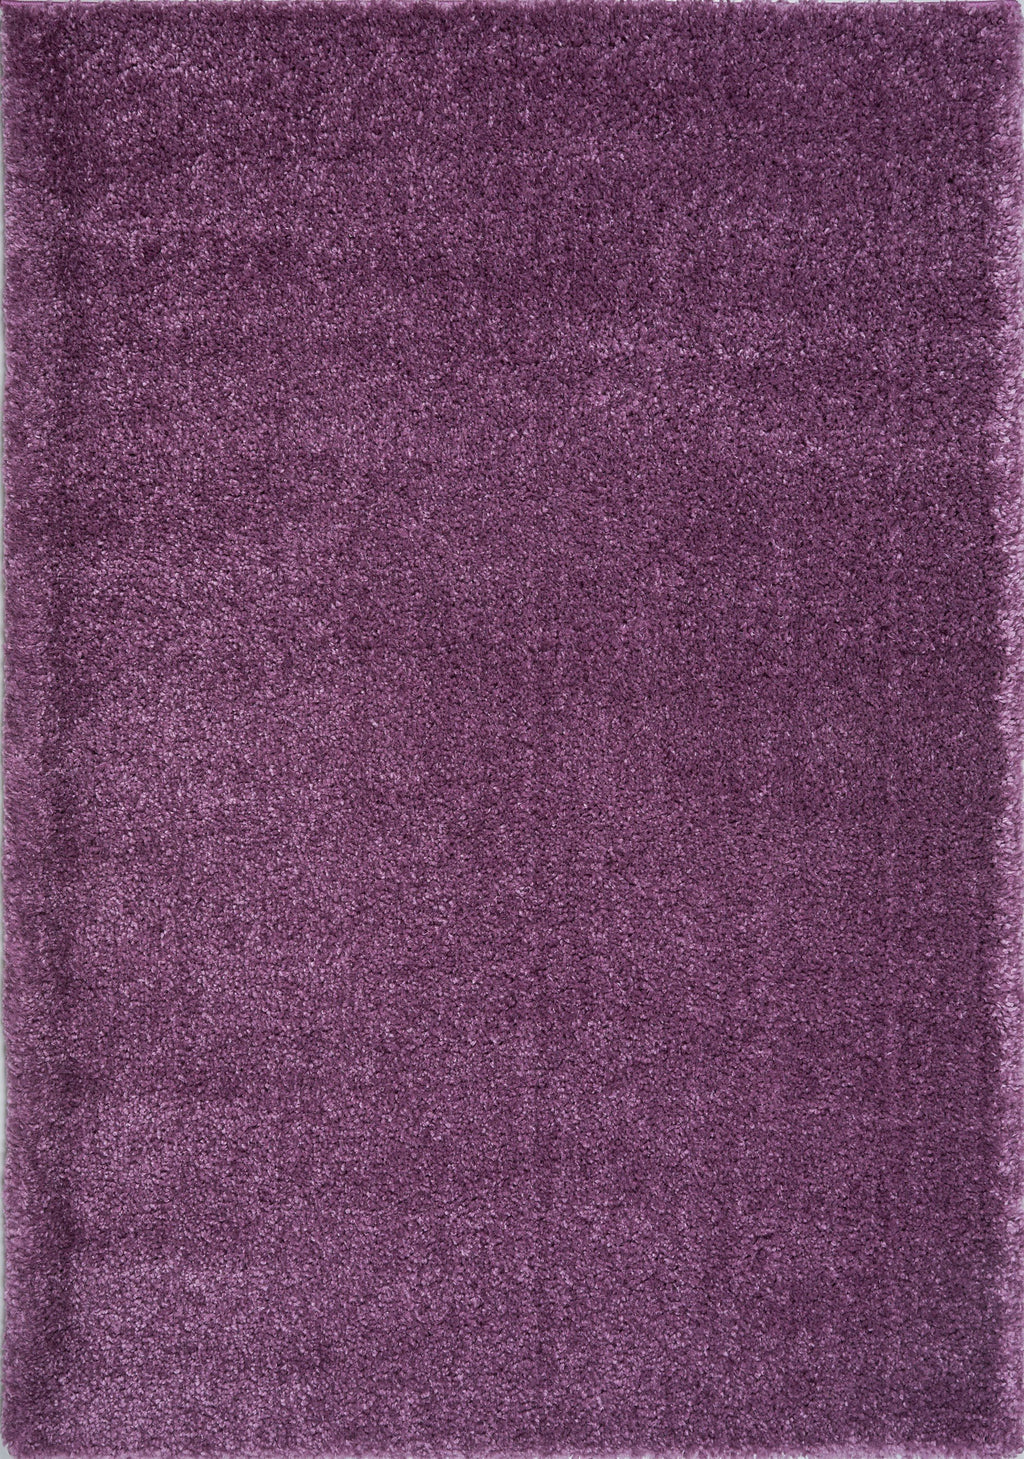 Candy Shaggy Purple Area Rug -